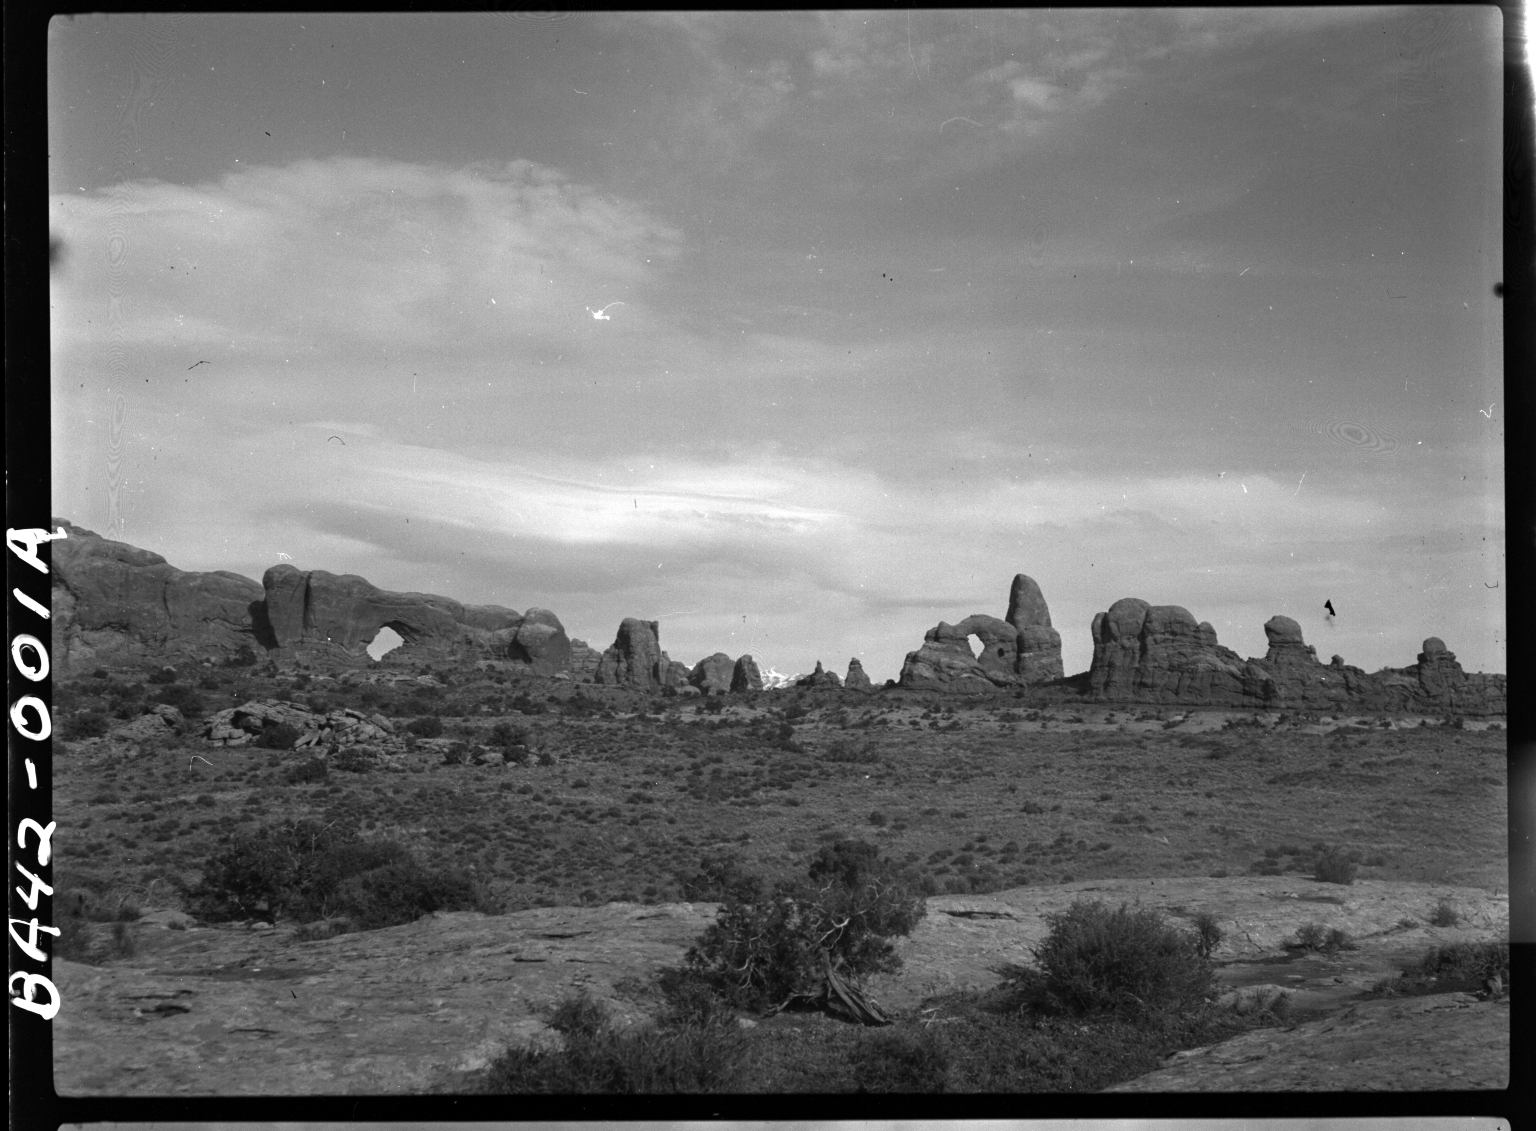 Fieldwork in Arches National Park